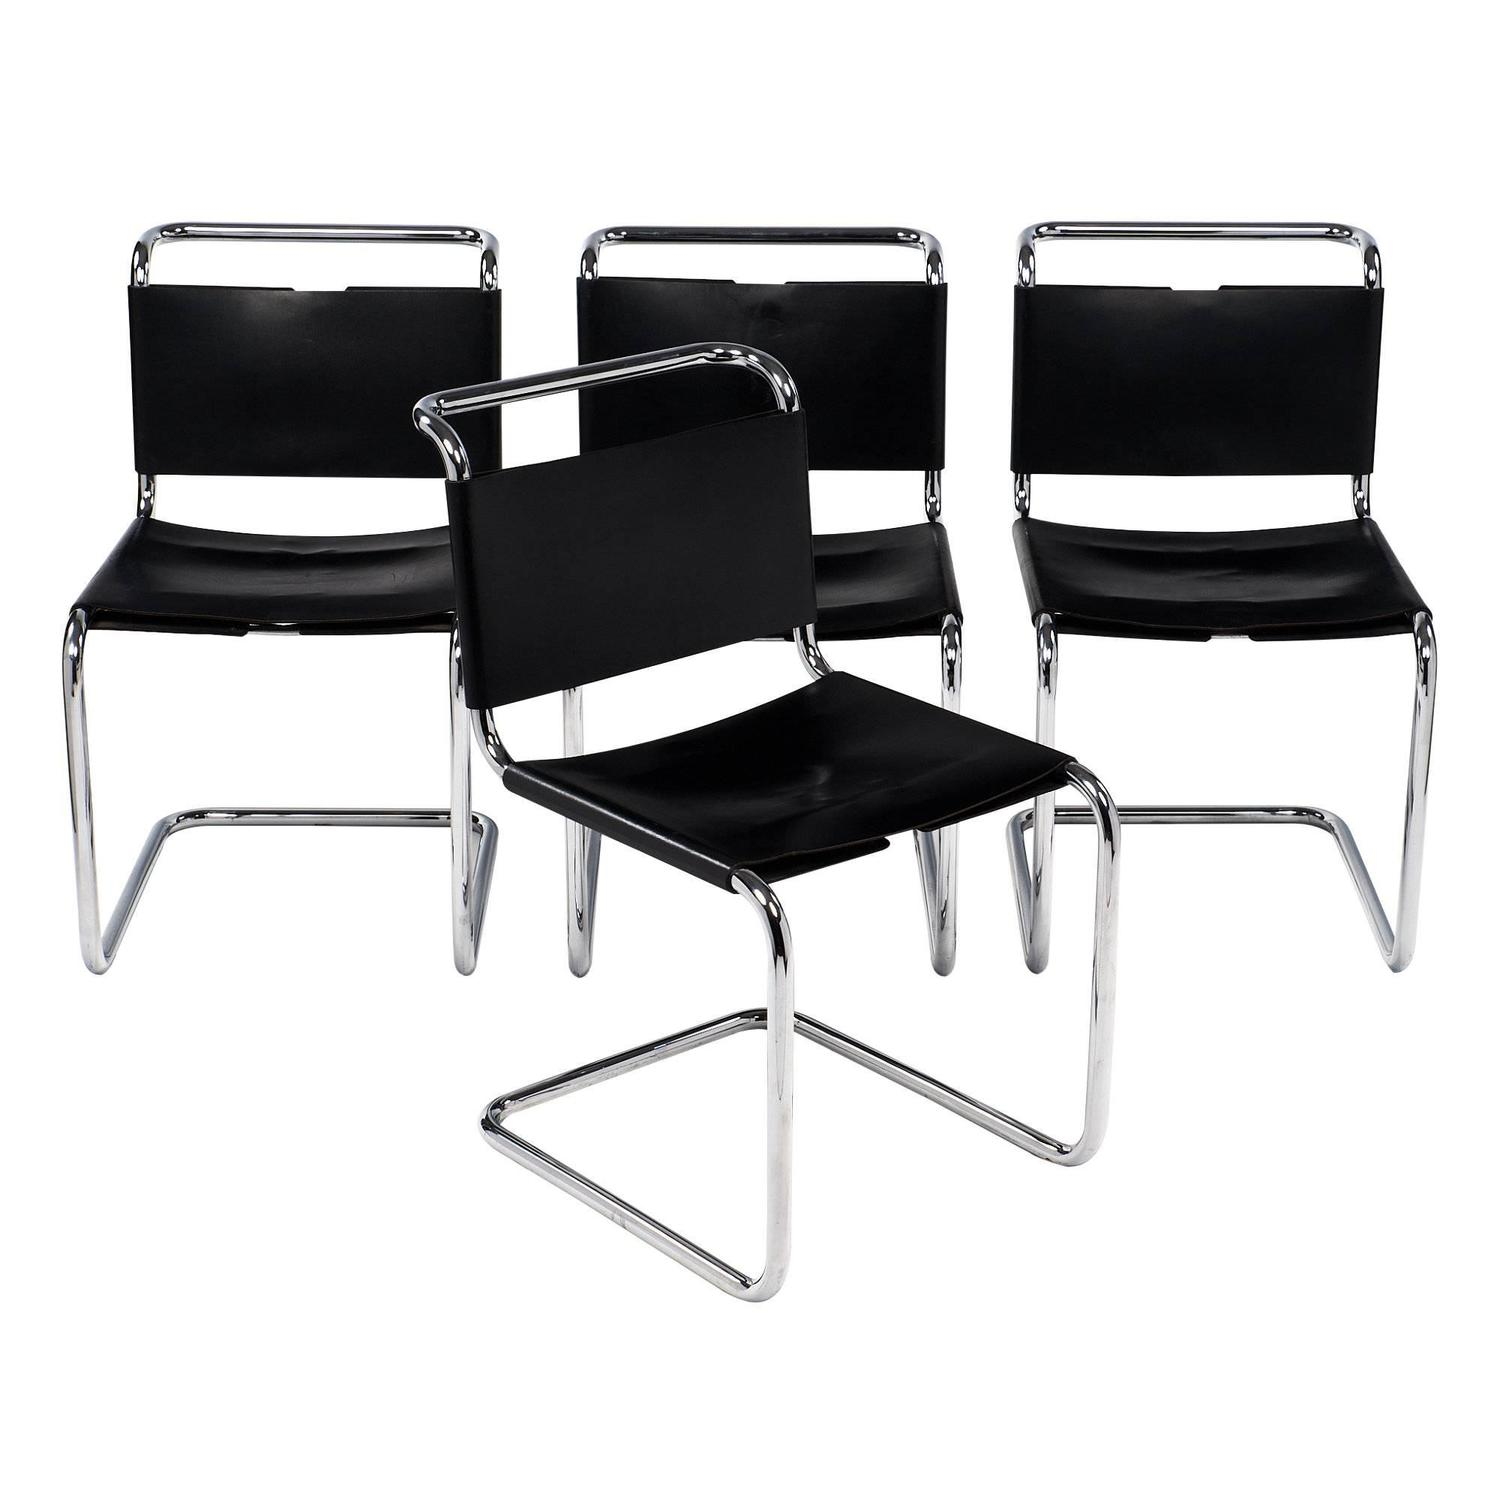 Marcel Breuer Black Leather Chairs For Sale at 1stdibs